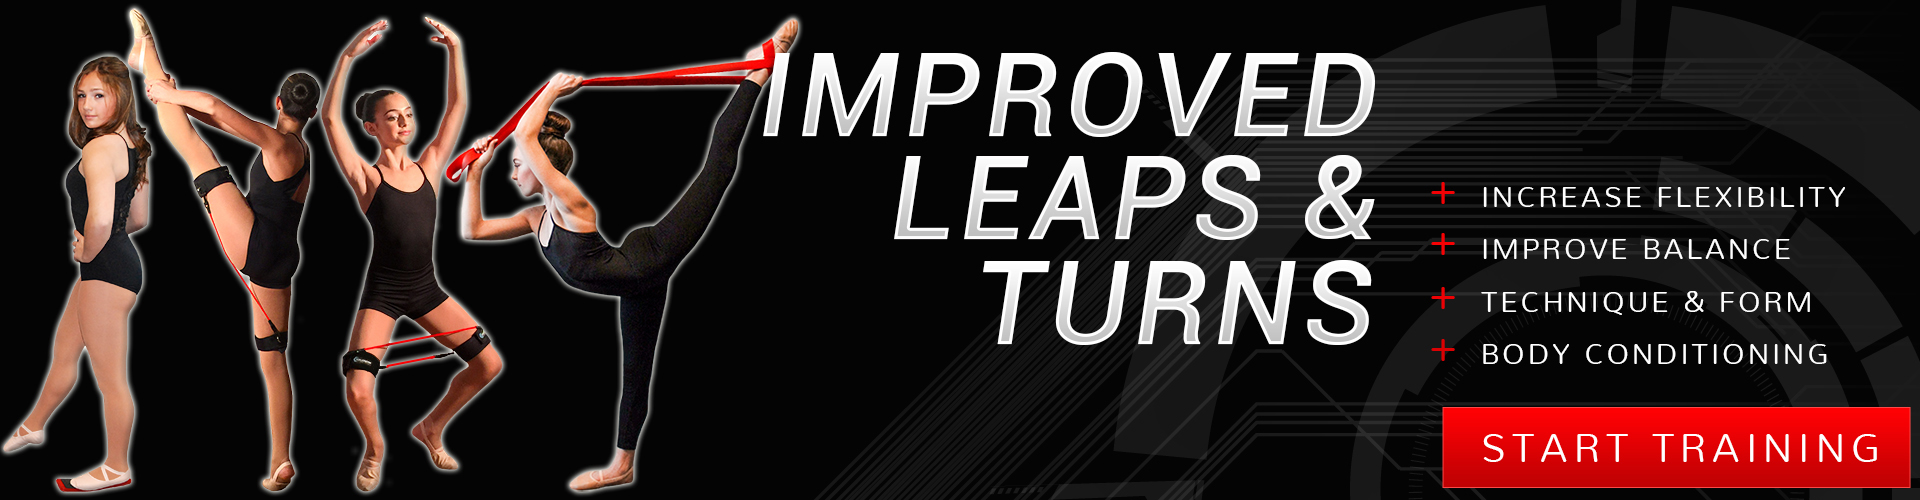 Improve leaps and turns with our dance training products. Increase flexibility, improve balance, technique and form, body conditioning.